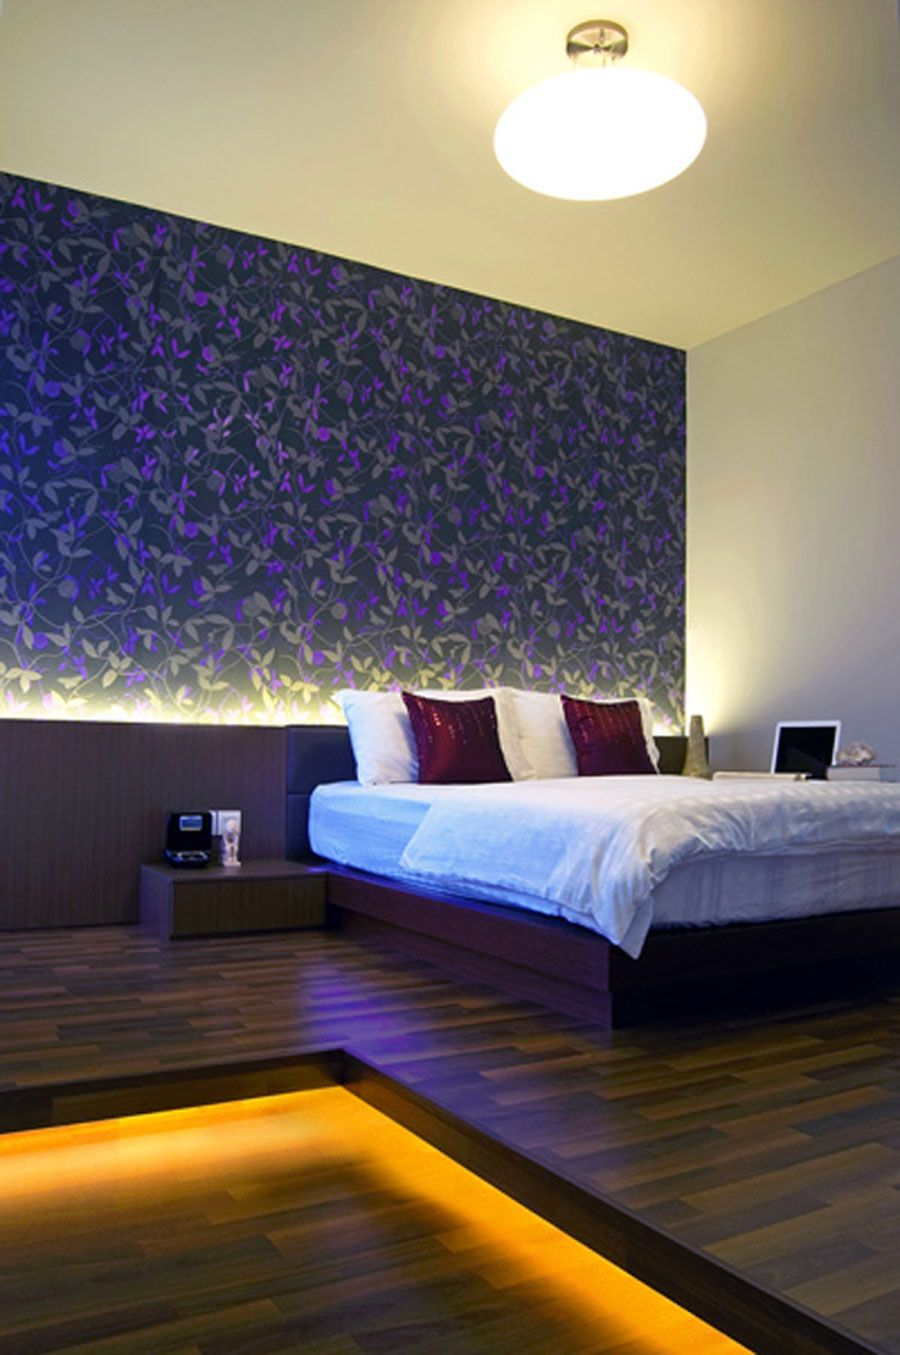 Bedroom Wall Design Kris Jenner Just Bought The $10 Million Home Across From Kim